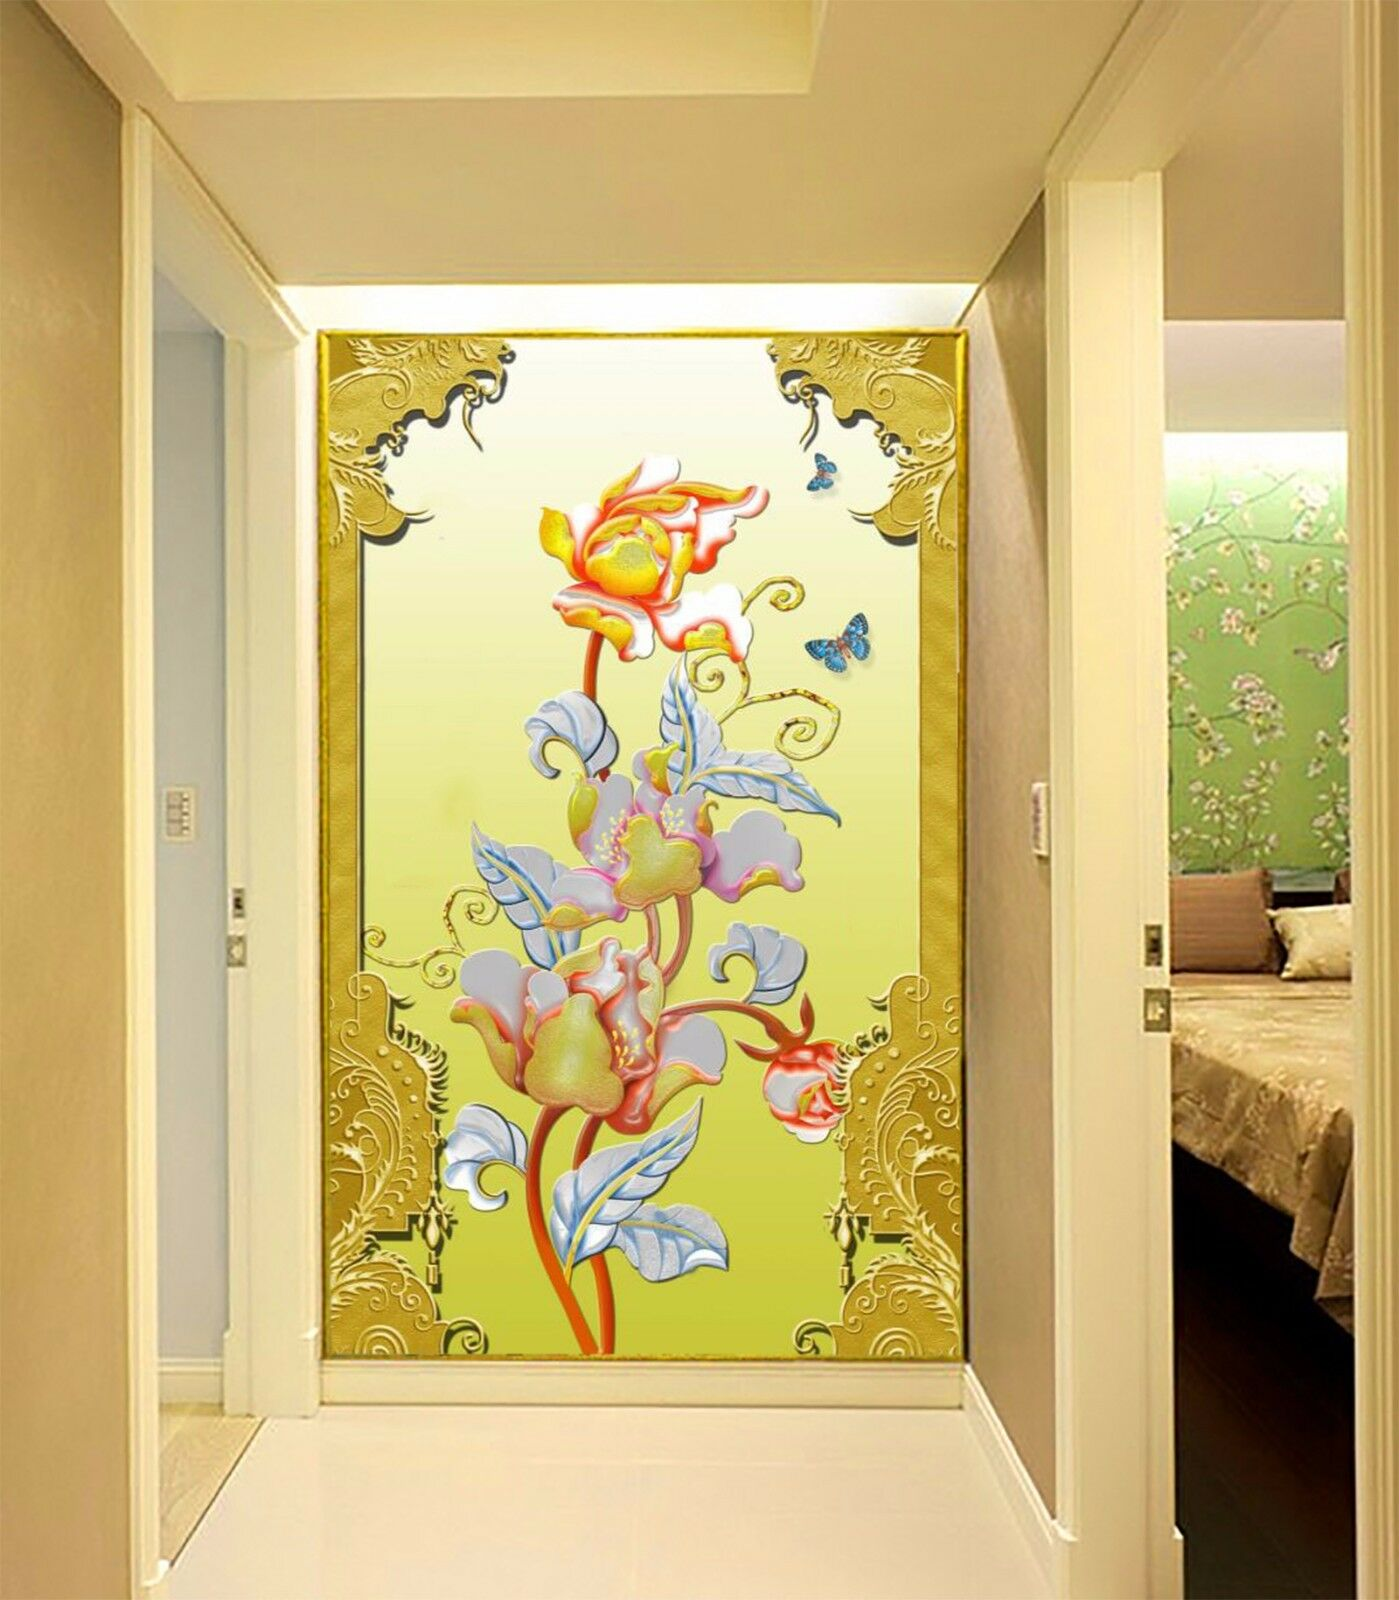 3D Flower carving painting Wall Paper Print Decal Wall Deco Indoor wall Mural